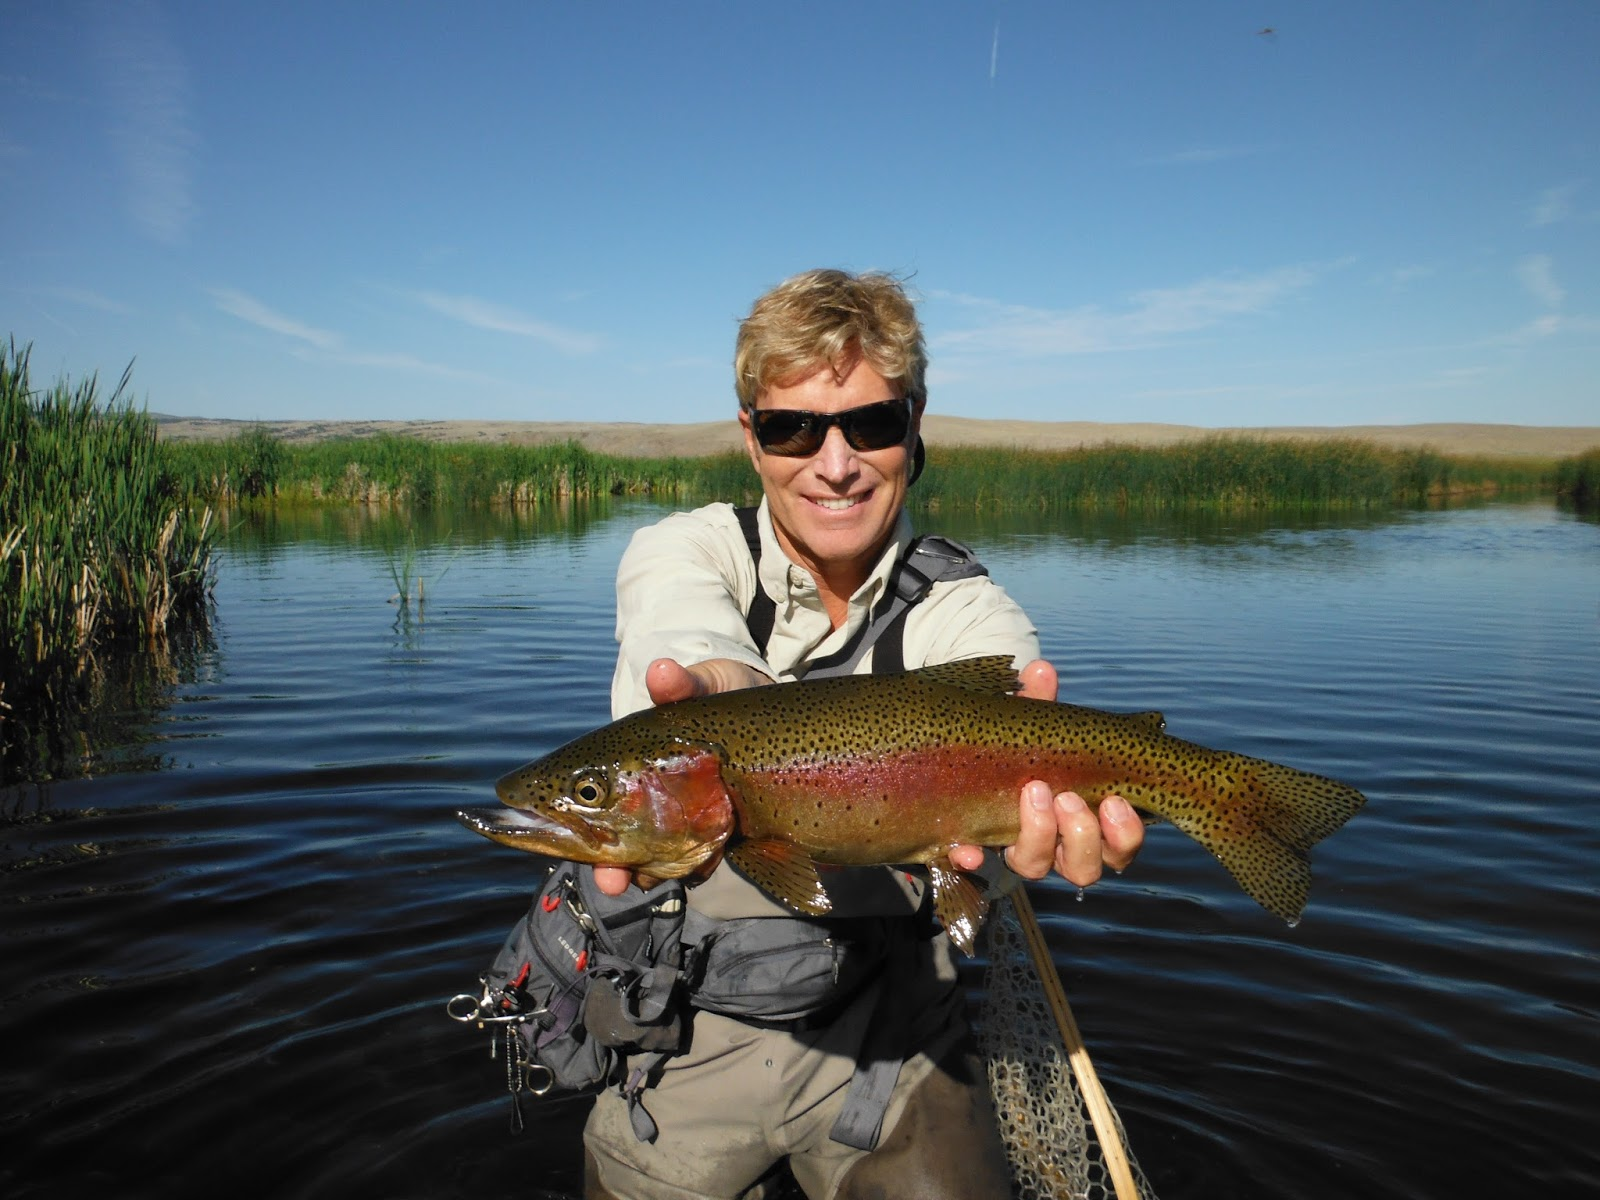 southern utah fly fishing quiet fly fisher guide service